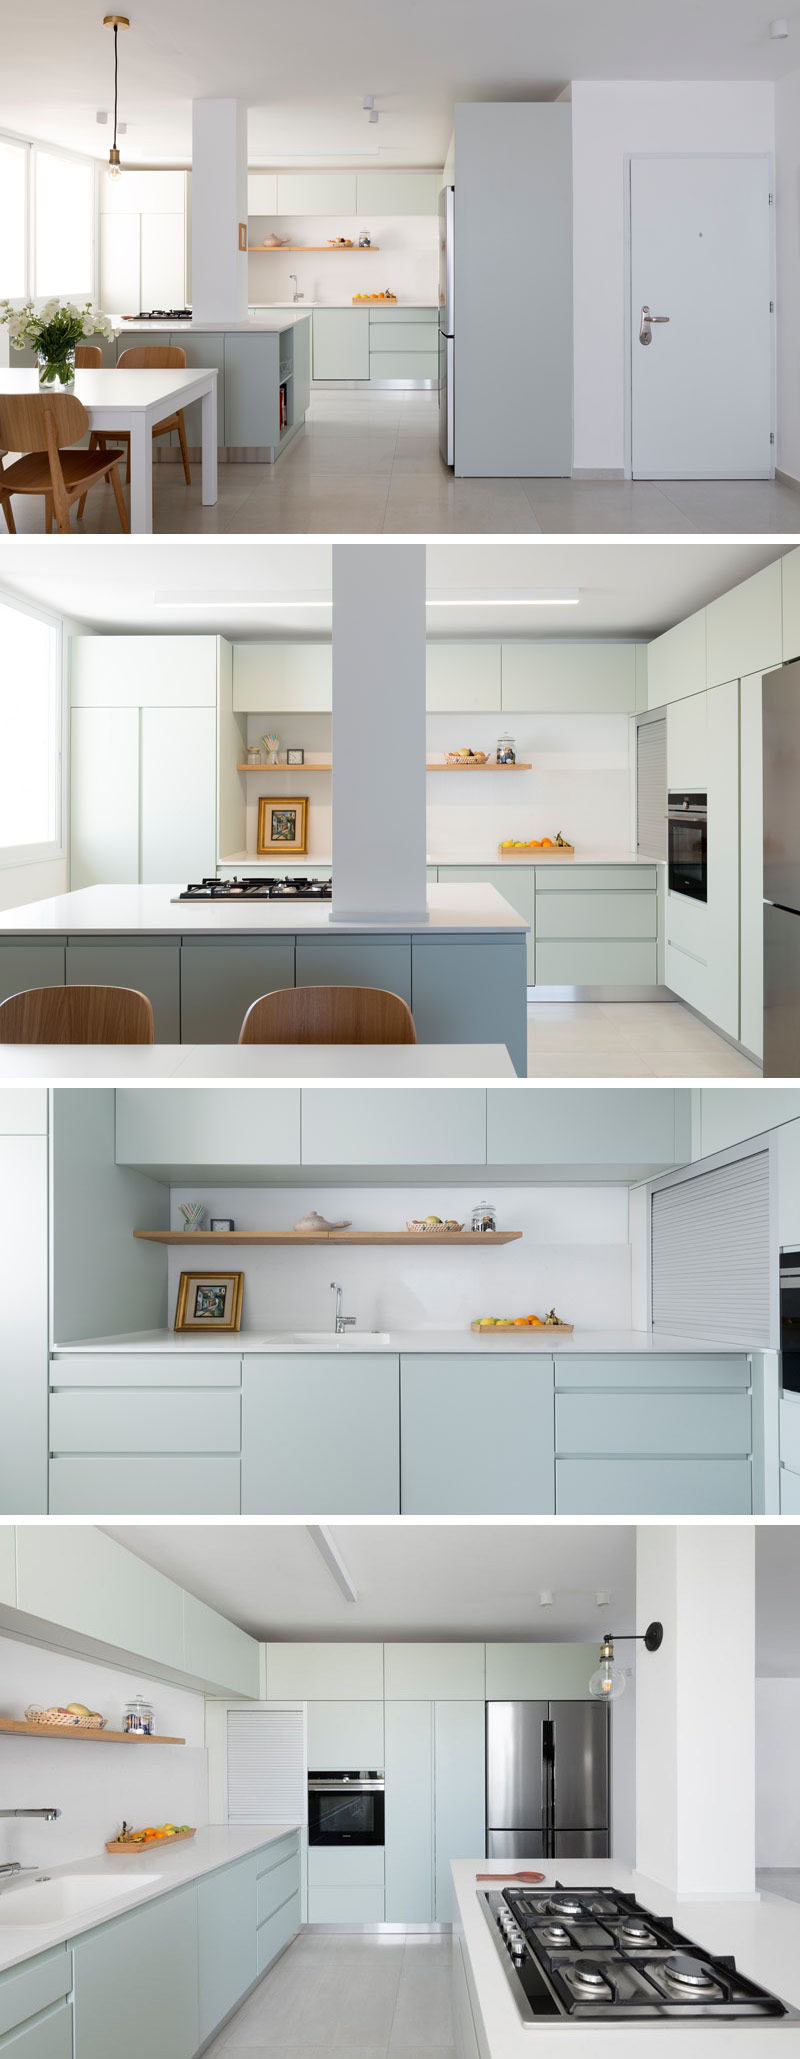 In this modern kitchen, white counters and light mint green cabinets give the space a sleek contemporary look. The large white island provides plenty of counter space, while a floating wood shelf ties in with the wood dining chairs and furniture in the living room.